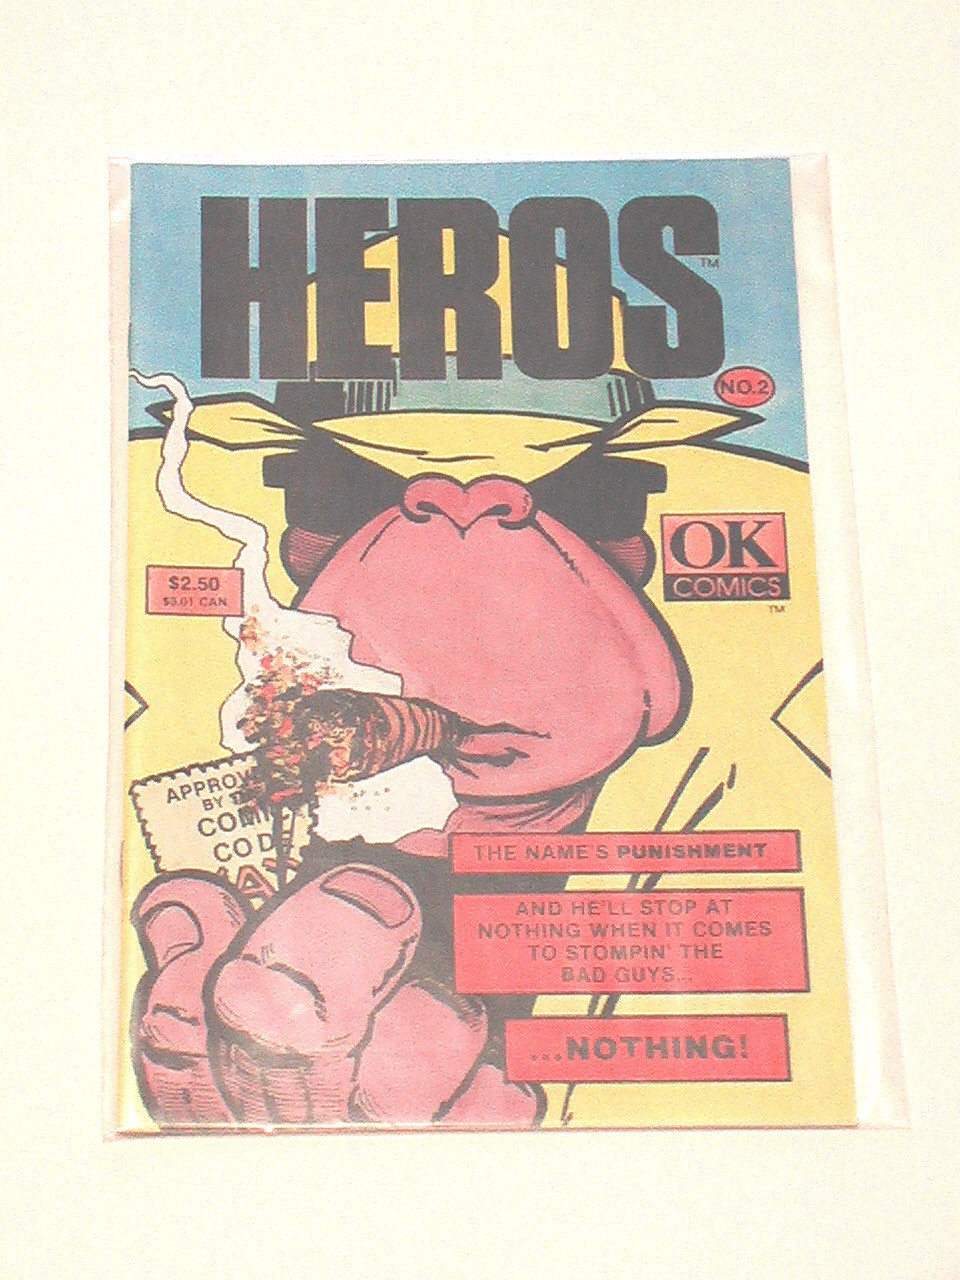 HEROS ( Issue Number 2 ), September 1991